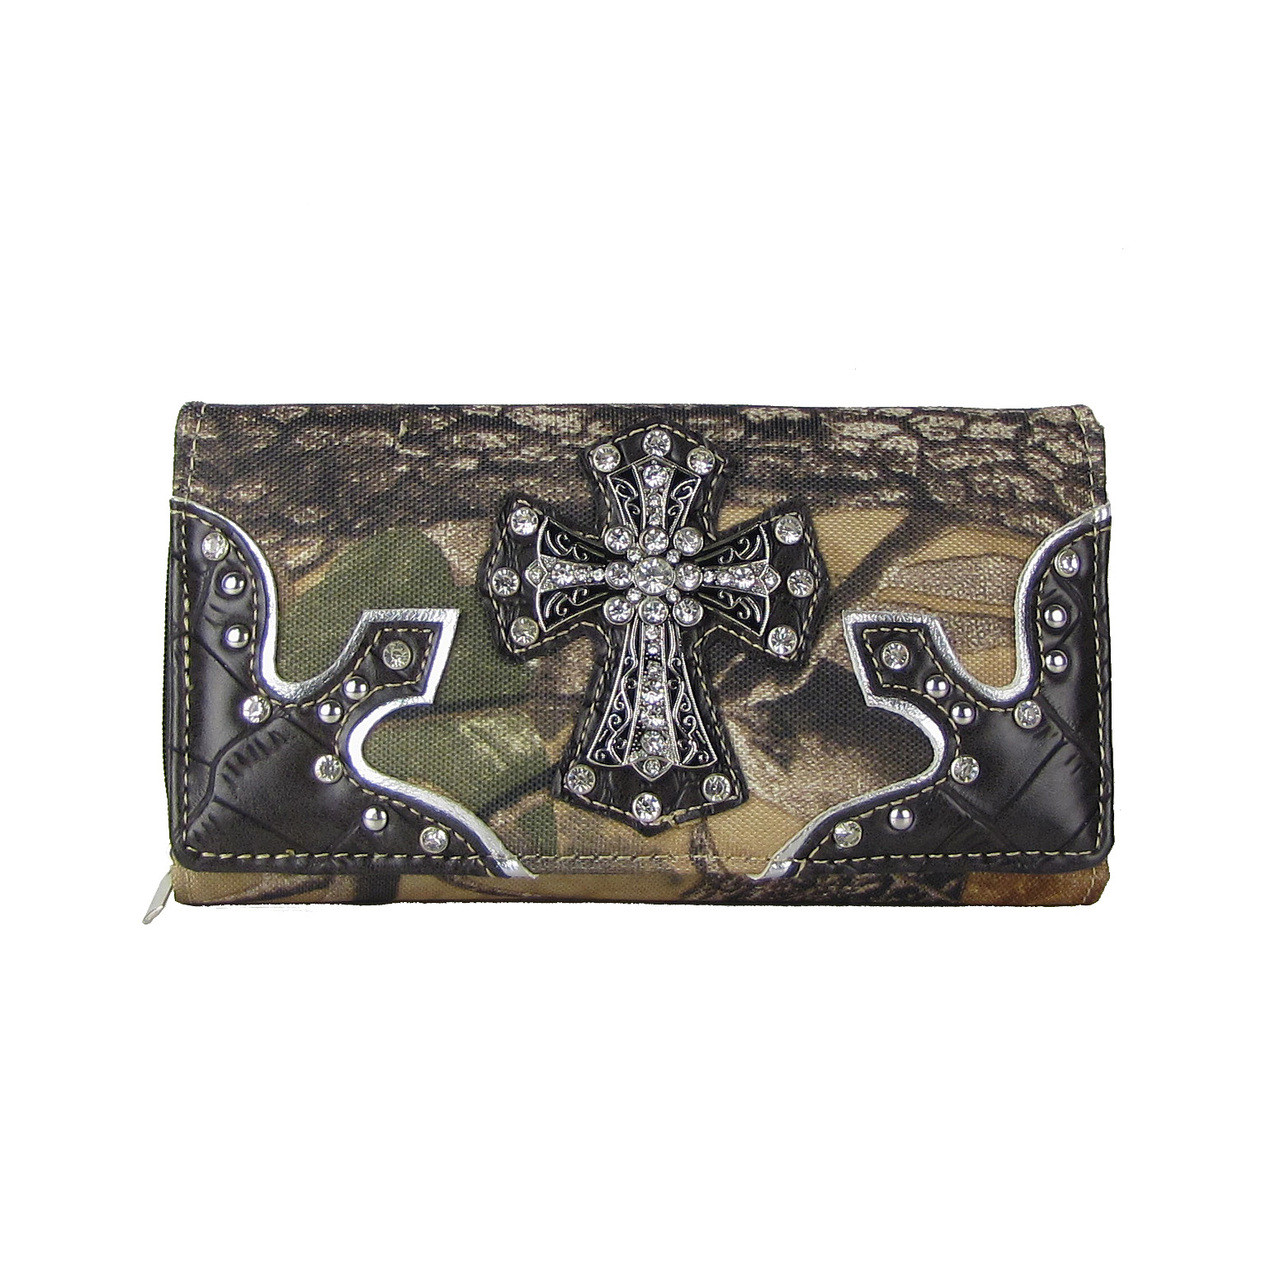 BROWN WESTERN STUDDED MOSSY CAMO CROSS LOOK CHECKBOOK WALLET CB1-0415BRN